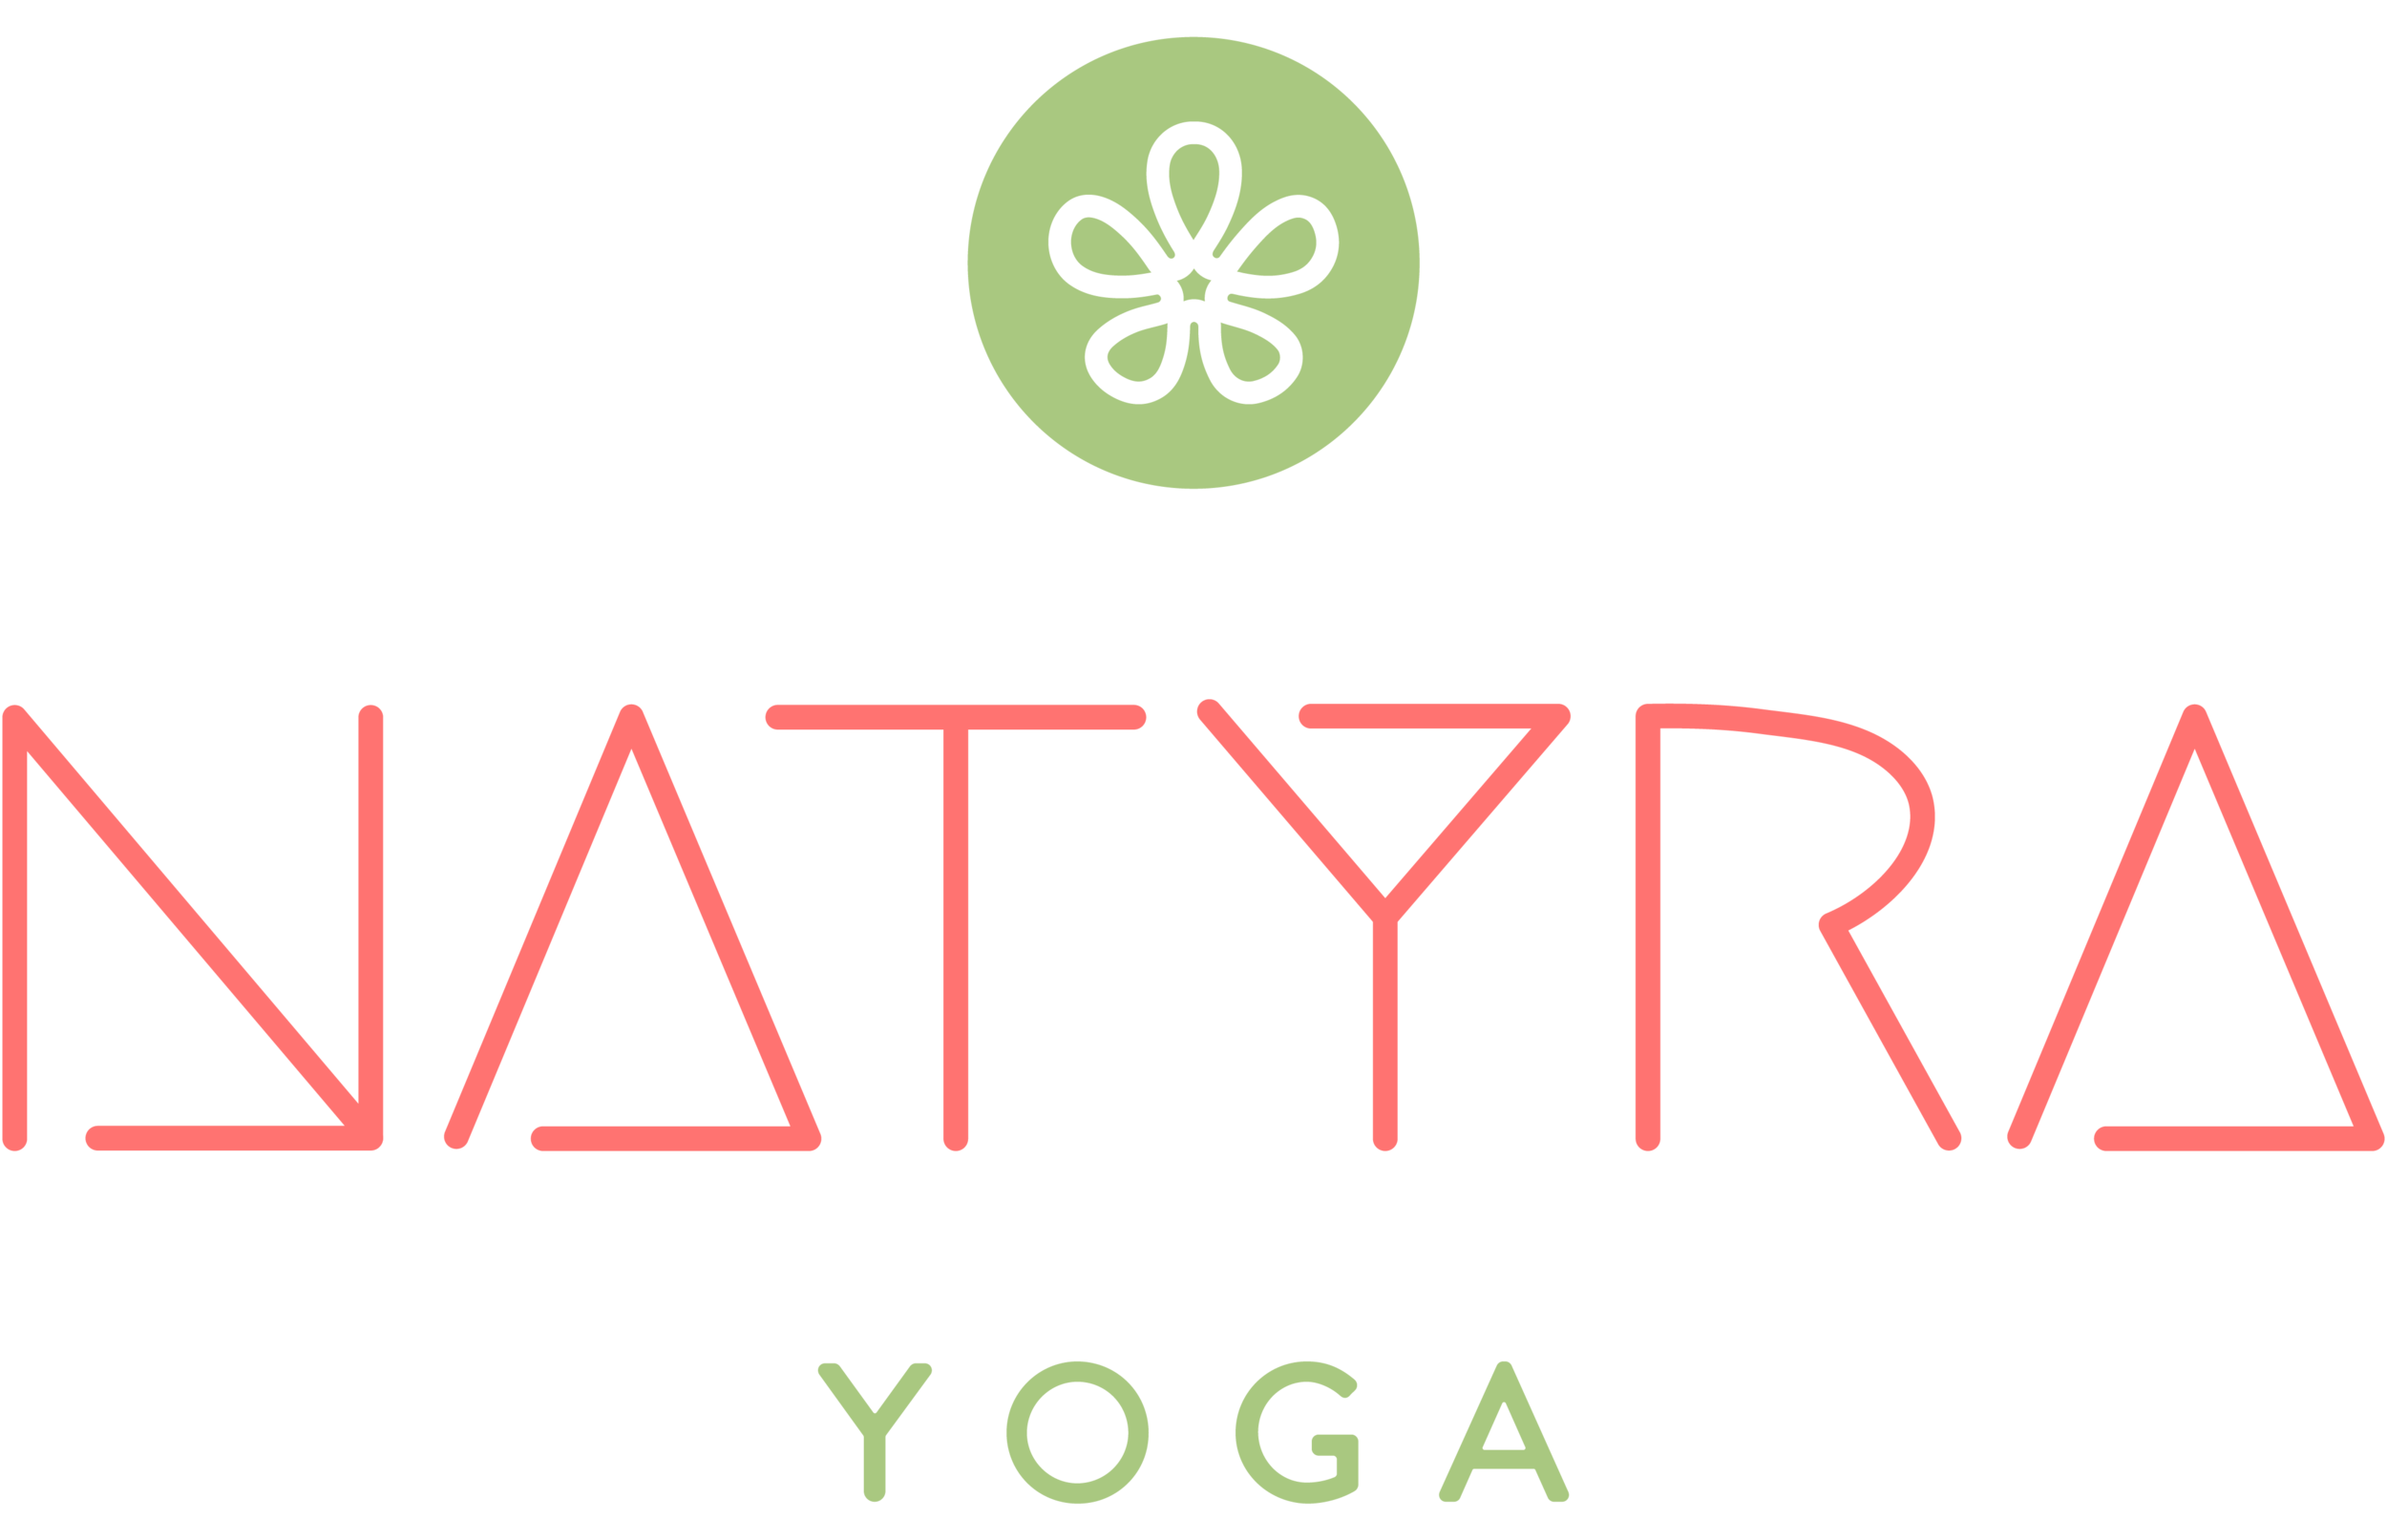 Natyra Yoga - a Brand with a heart open. 20% of profit are donated to families and kids in need in Brazil. The yoga pants are made all in Brazil and the bracelets are made with acai beads and LOTS of love.